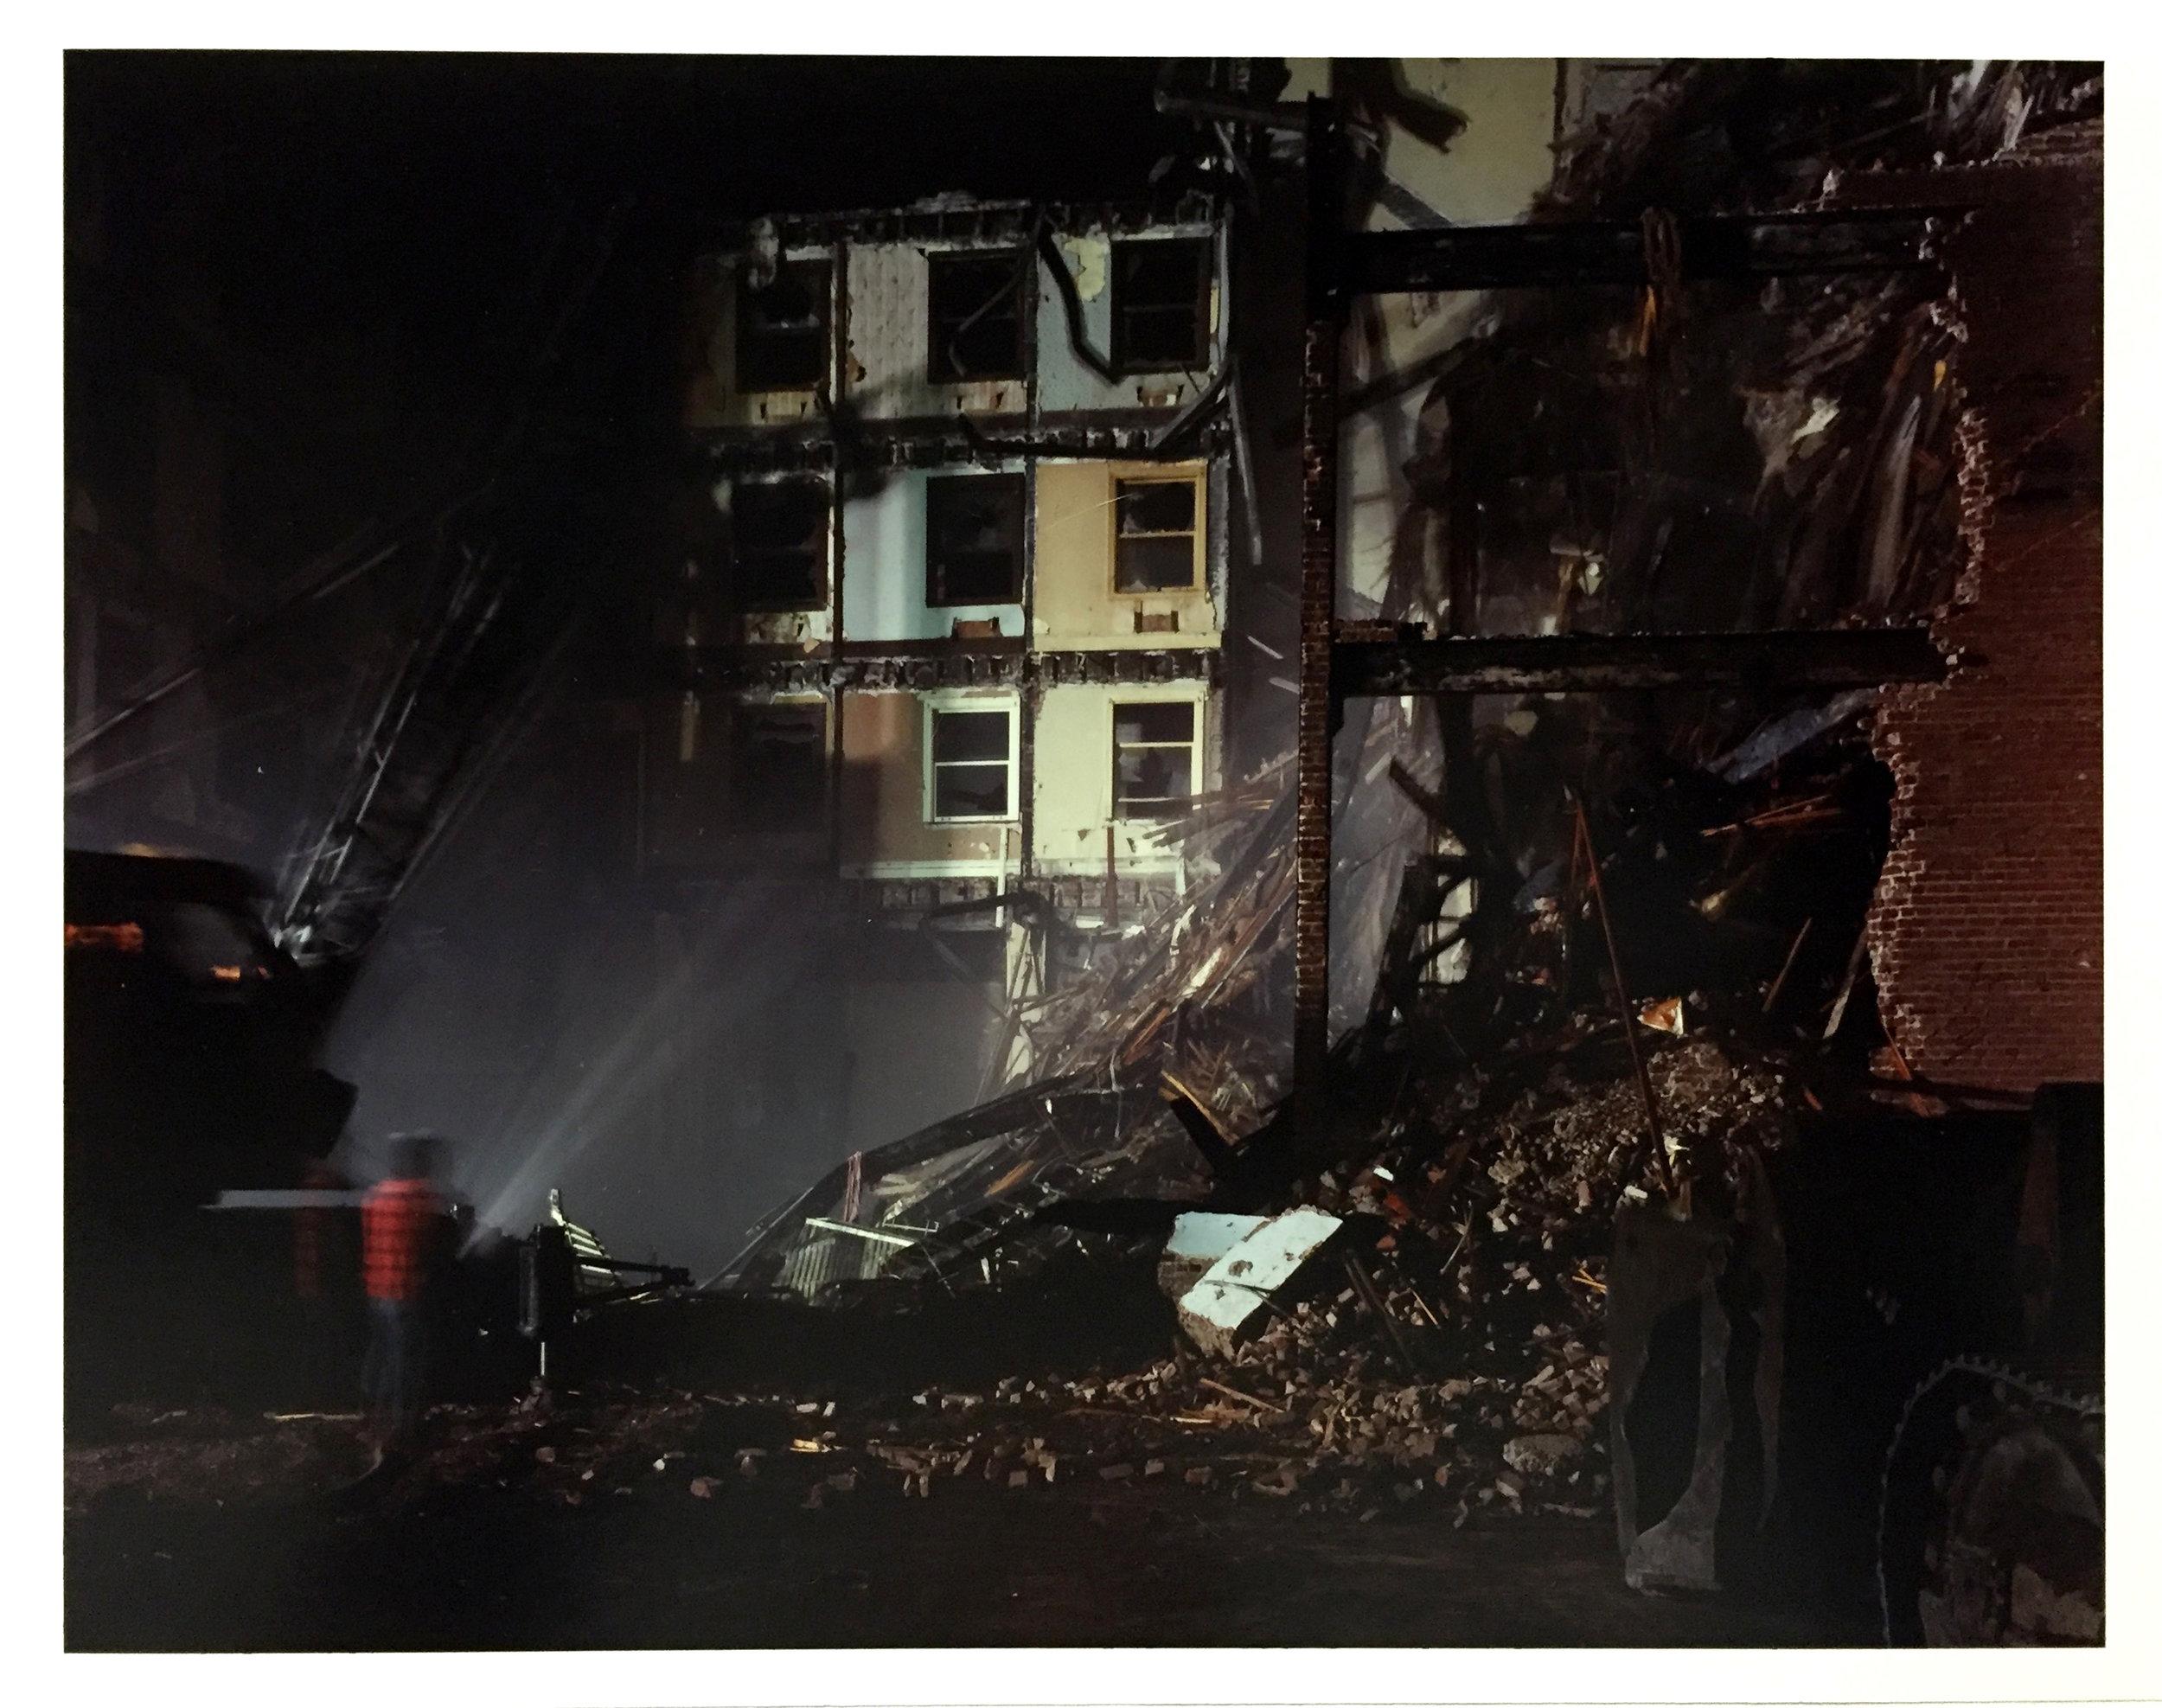 Night Deomolition of the Imperial Hotel, 4th at Minna Street, 1978 Vintage Chromogenic Print 11 x 14 inches and 16 x 20 inches